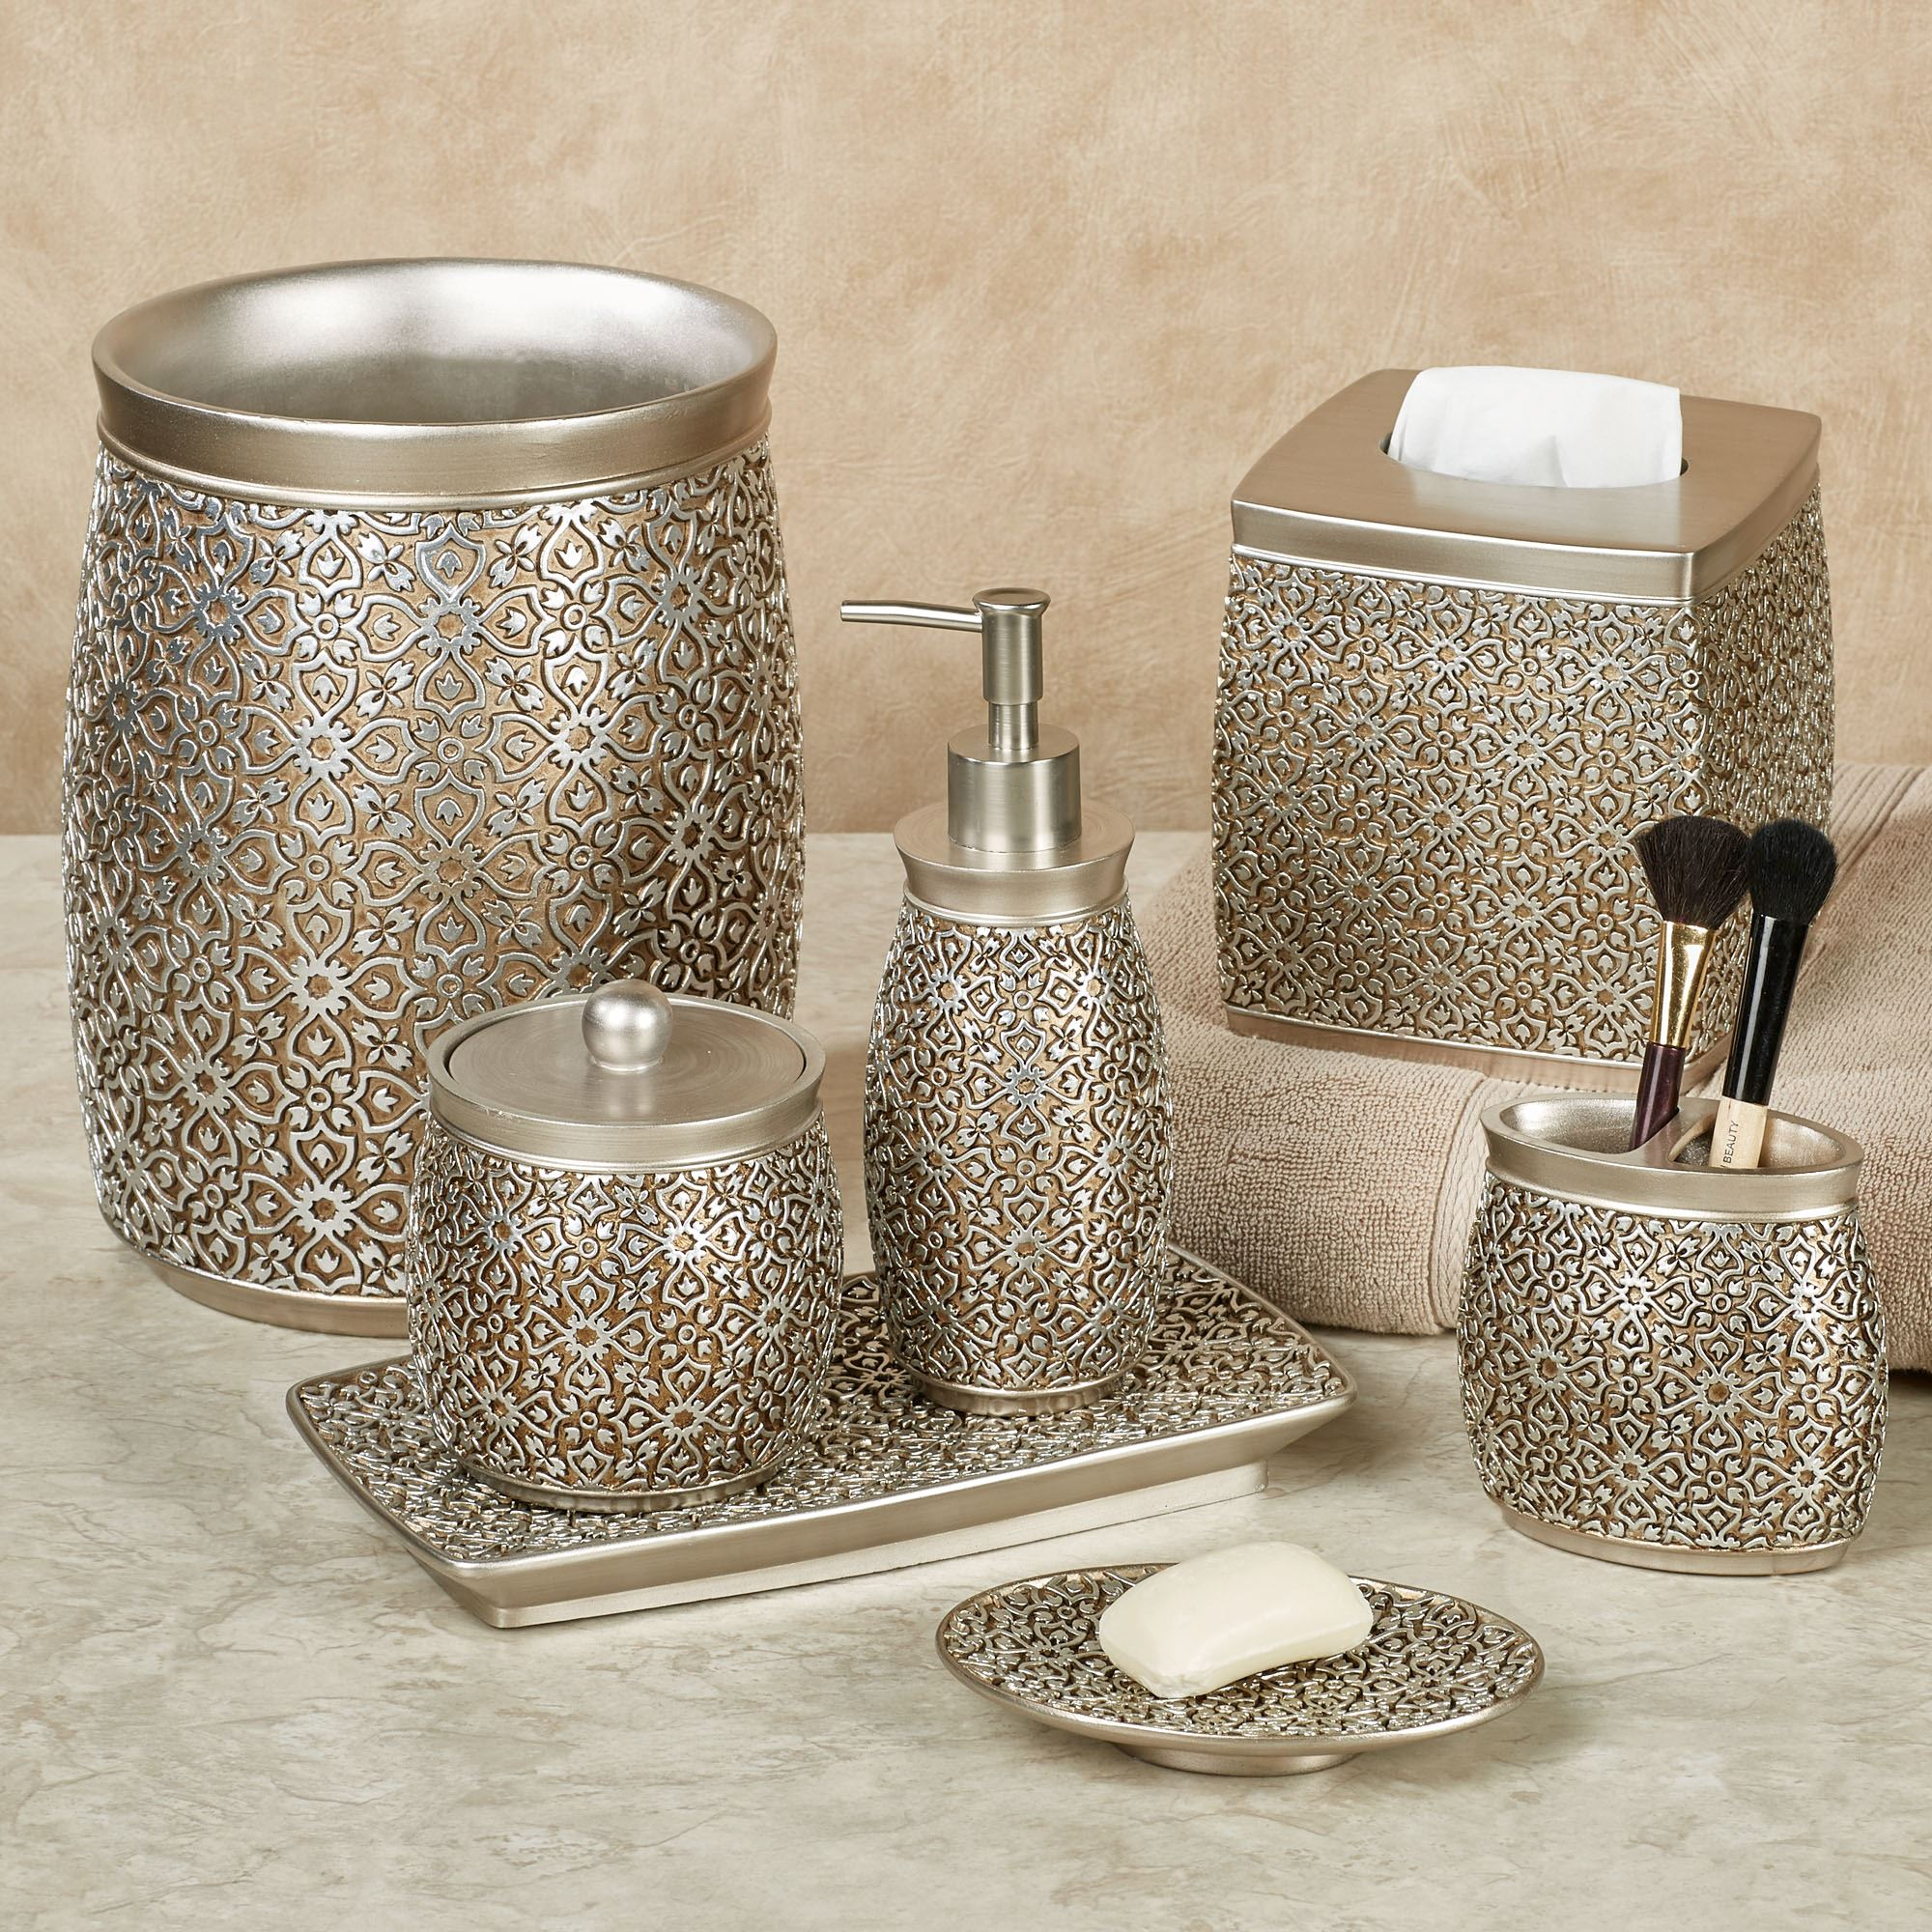 Jag Antique Gold and Silver Bath Accessories